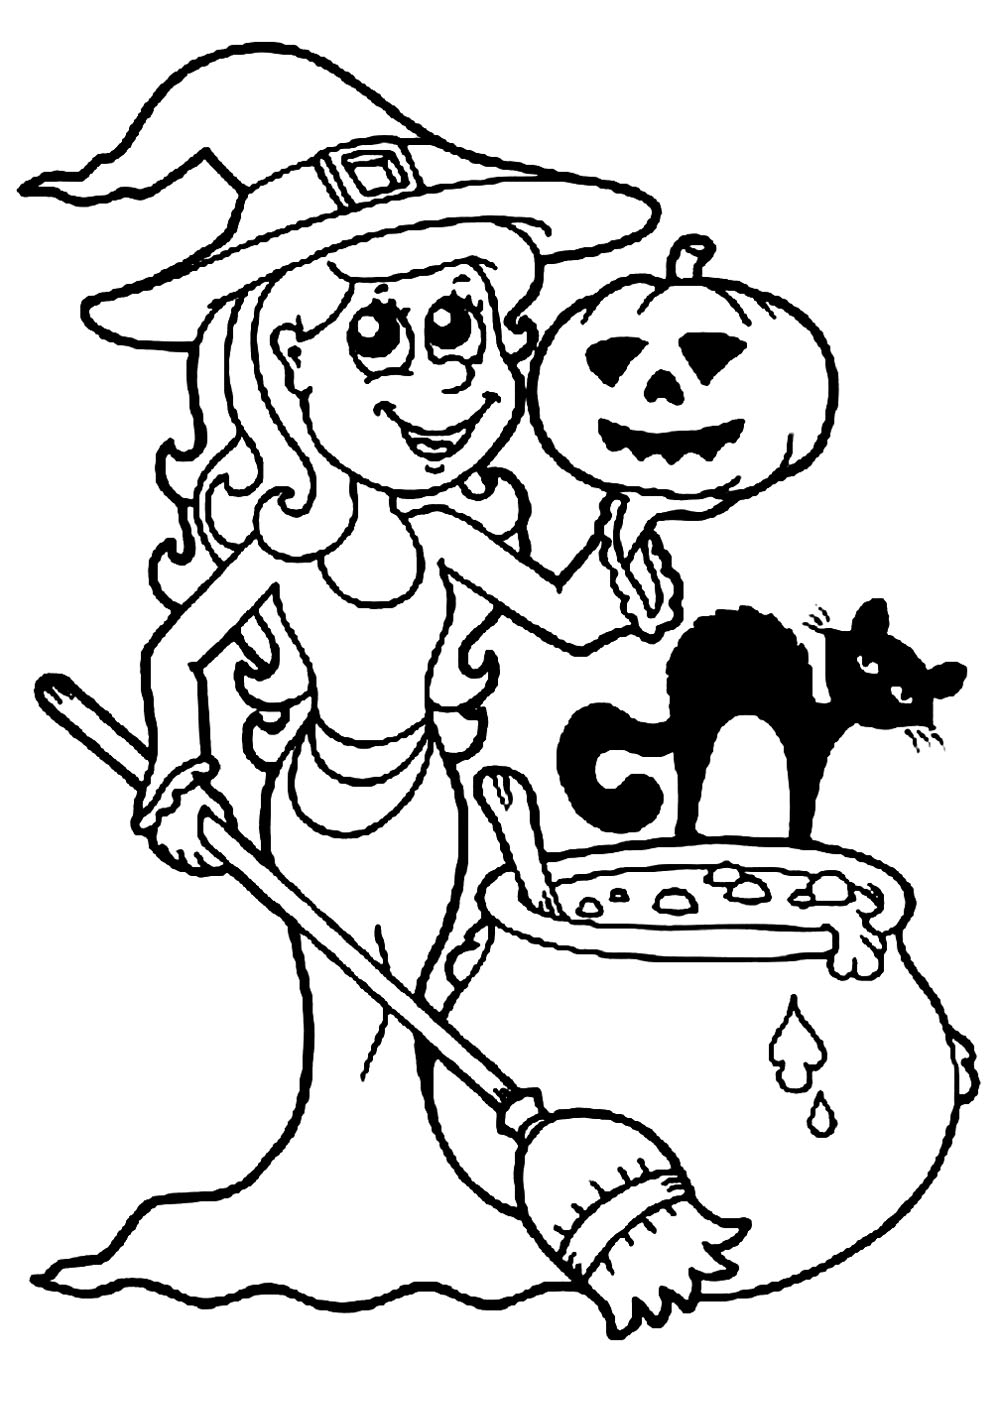 - Childrens Halloween Coloring Pages Azspringtrainingexperience